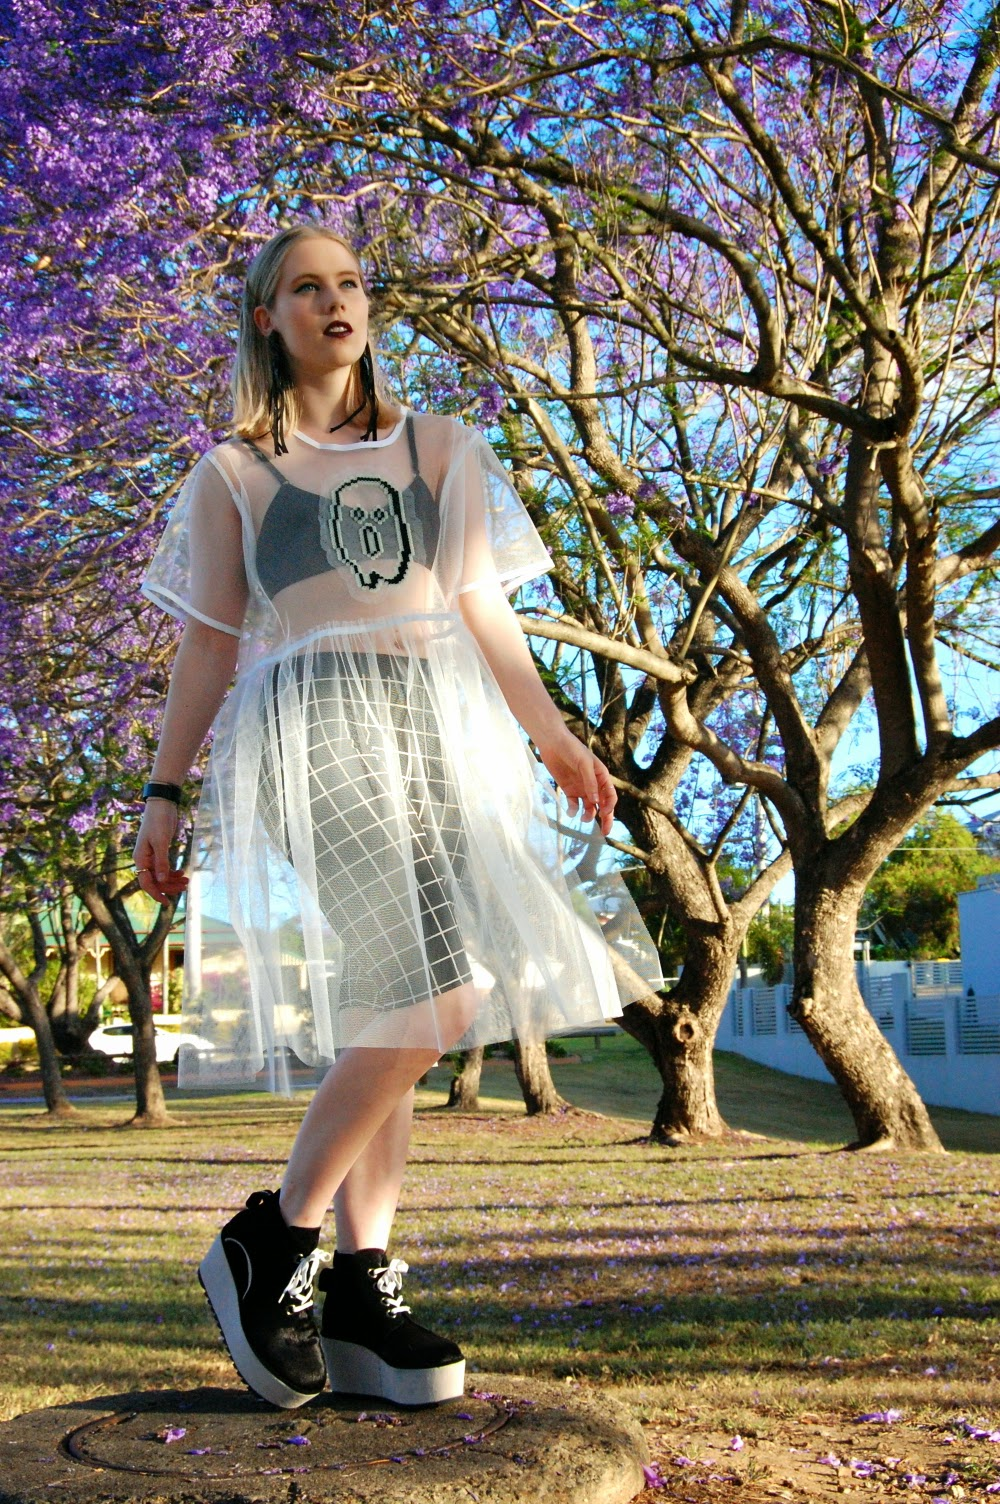 outsideiscolours fashion blog, outside is colours outfit, pip o'sullivan, ootd, halloween outfit, somewhere nowhere boo mesh dress, ghost dress, white mesh dress, fashionable halloween costume, degen flatforms, solestruck degen sumner platforms, black platform sneakers, laceup flatform shoes, front row shop grid shorts